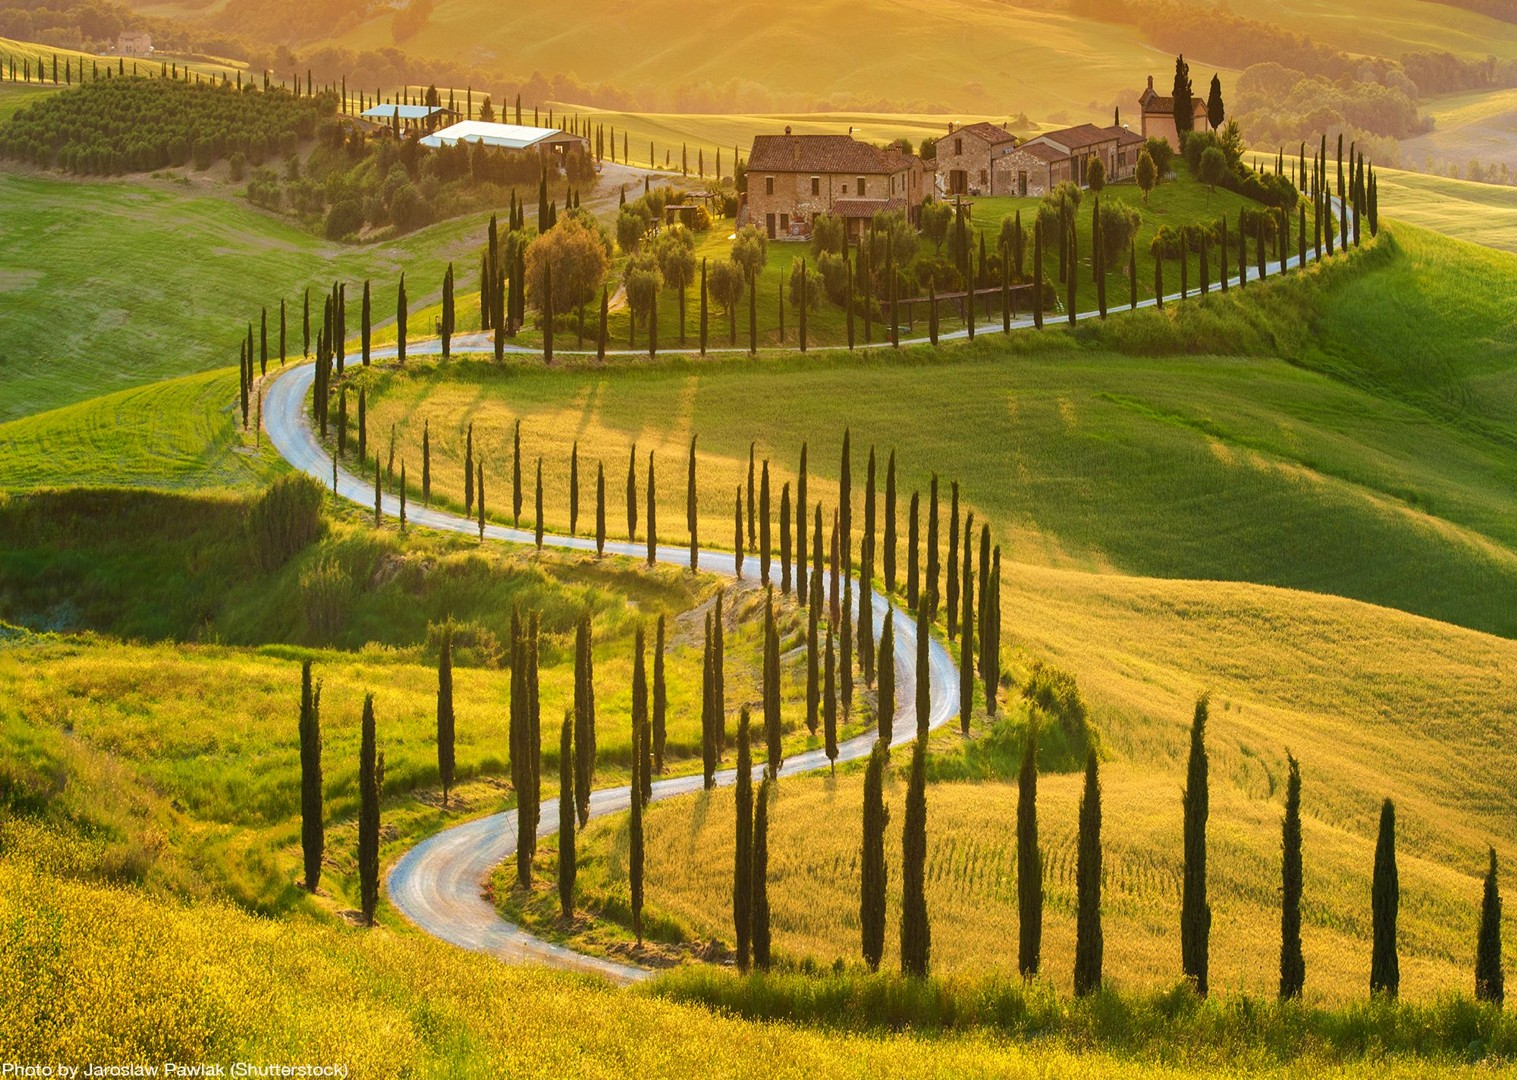 cypress-snakes-tuscany-leisure-bike-tour-guided.jpg - Italy - Tuscany - Giro della Toscana - Self-Guided Road Cycling Holiday - Road Cycling